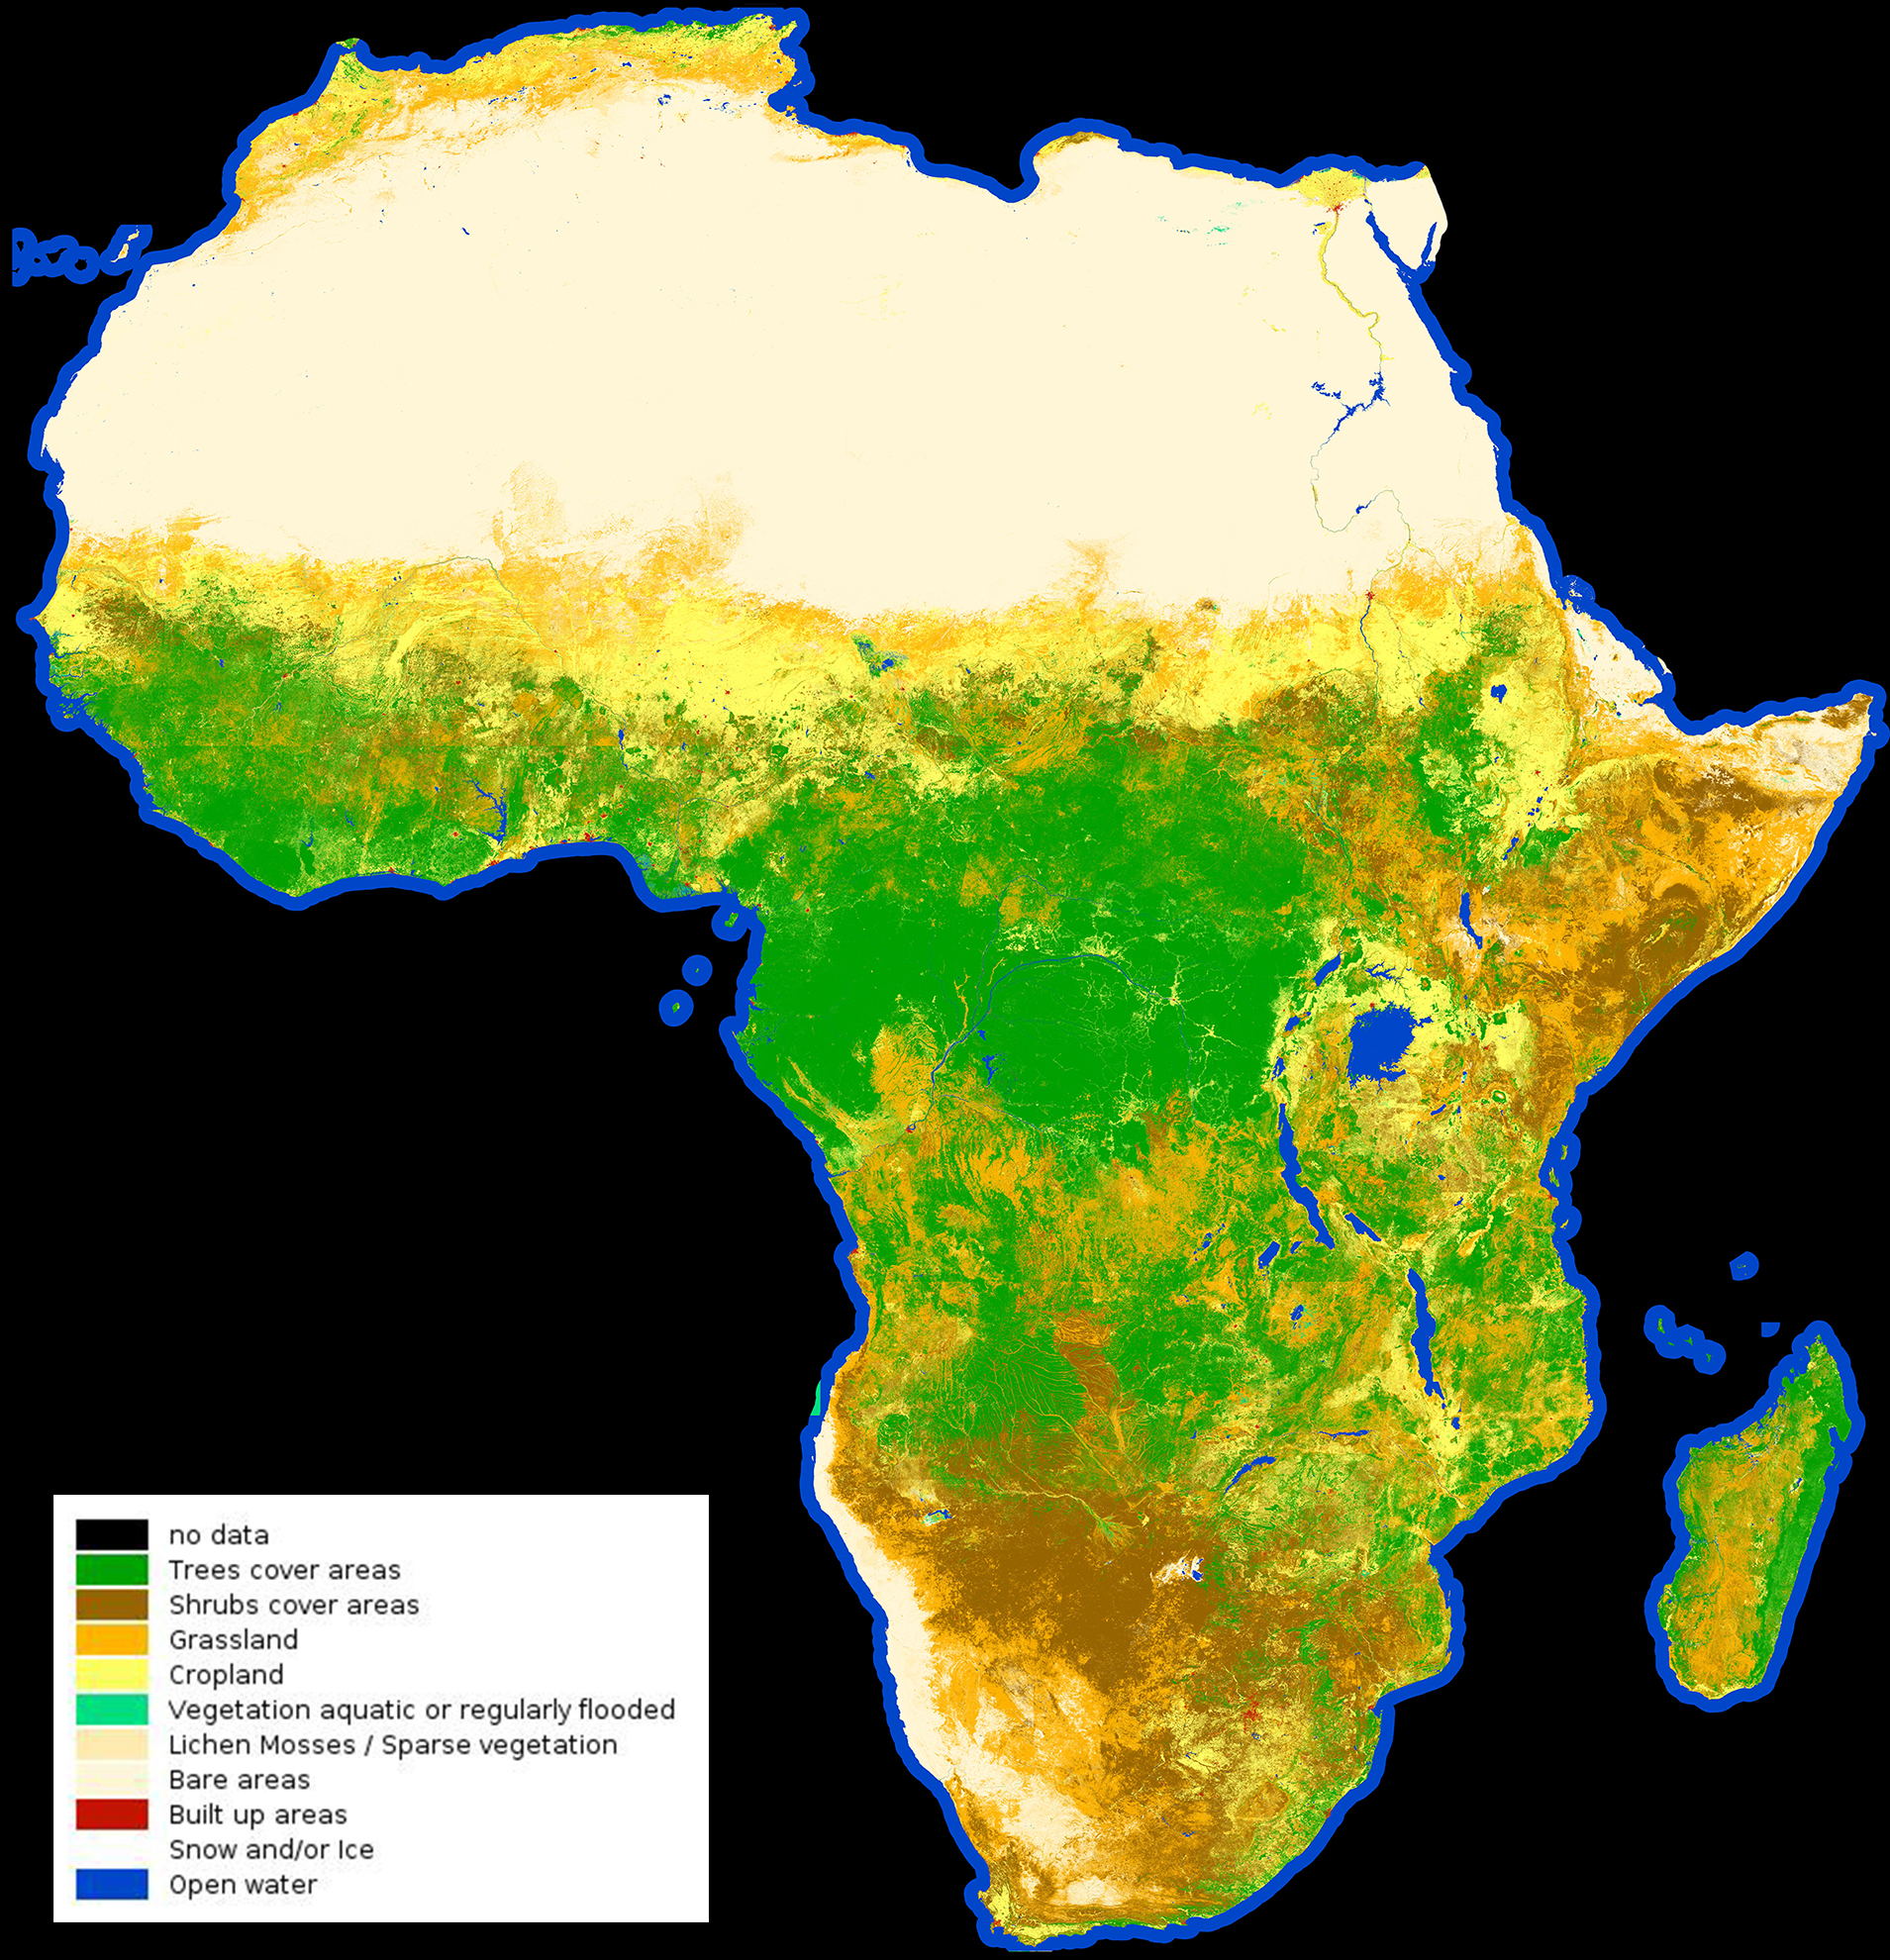 Africa Classified Space For Our Climate Observing The Earth - Africa climate map